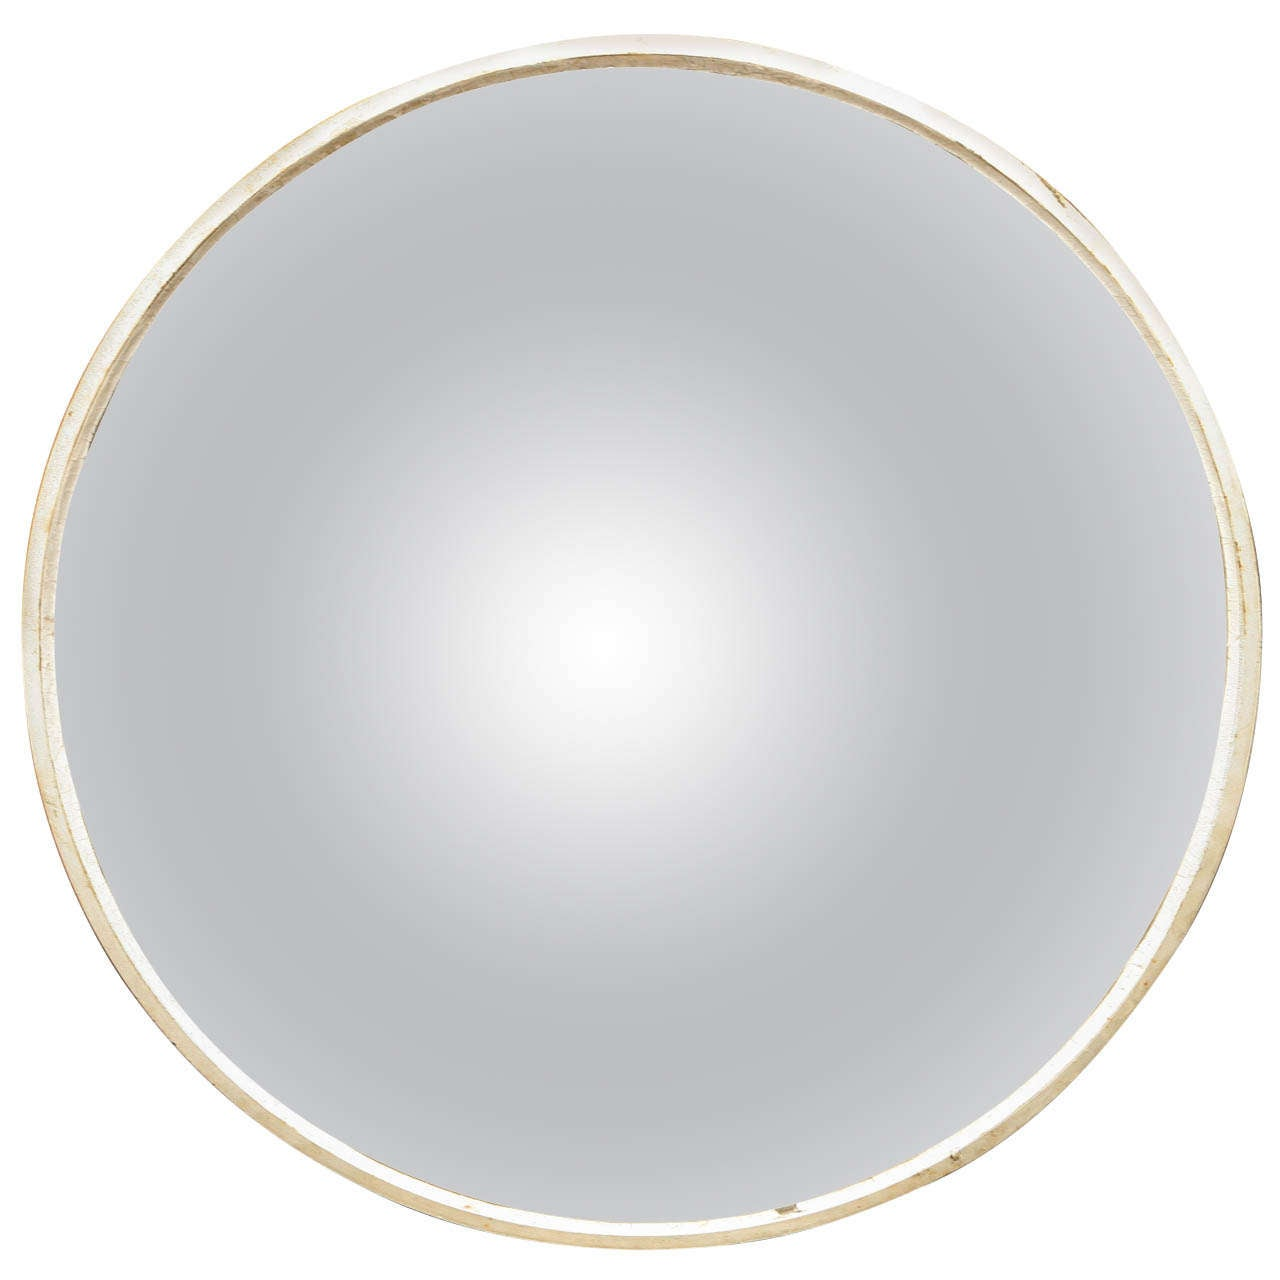 A convex mirror circa 1880 at 1stdibs for Convex mirror